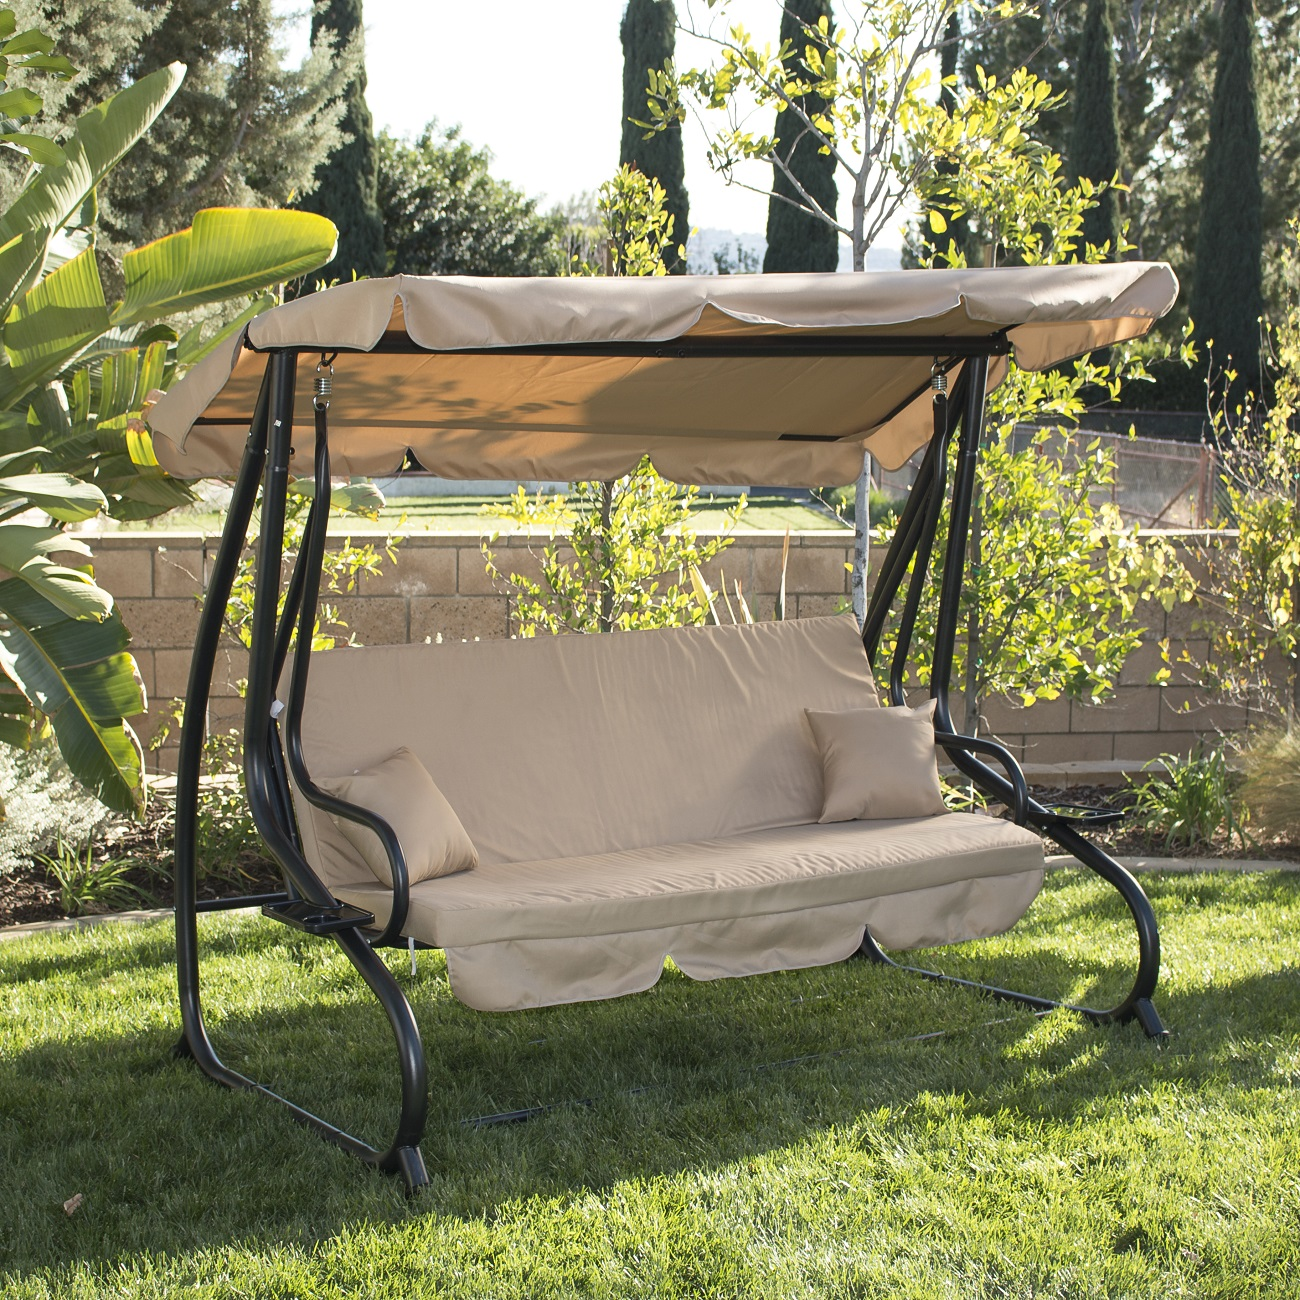 3 Person Outdoor Swing W Canopy Seat Patio Hammock Furniture Bench Yard Loveseat